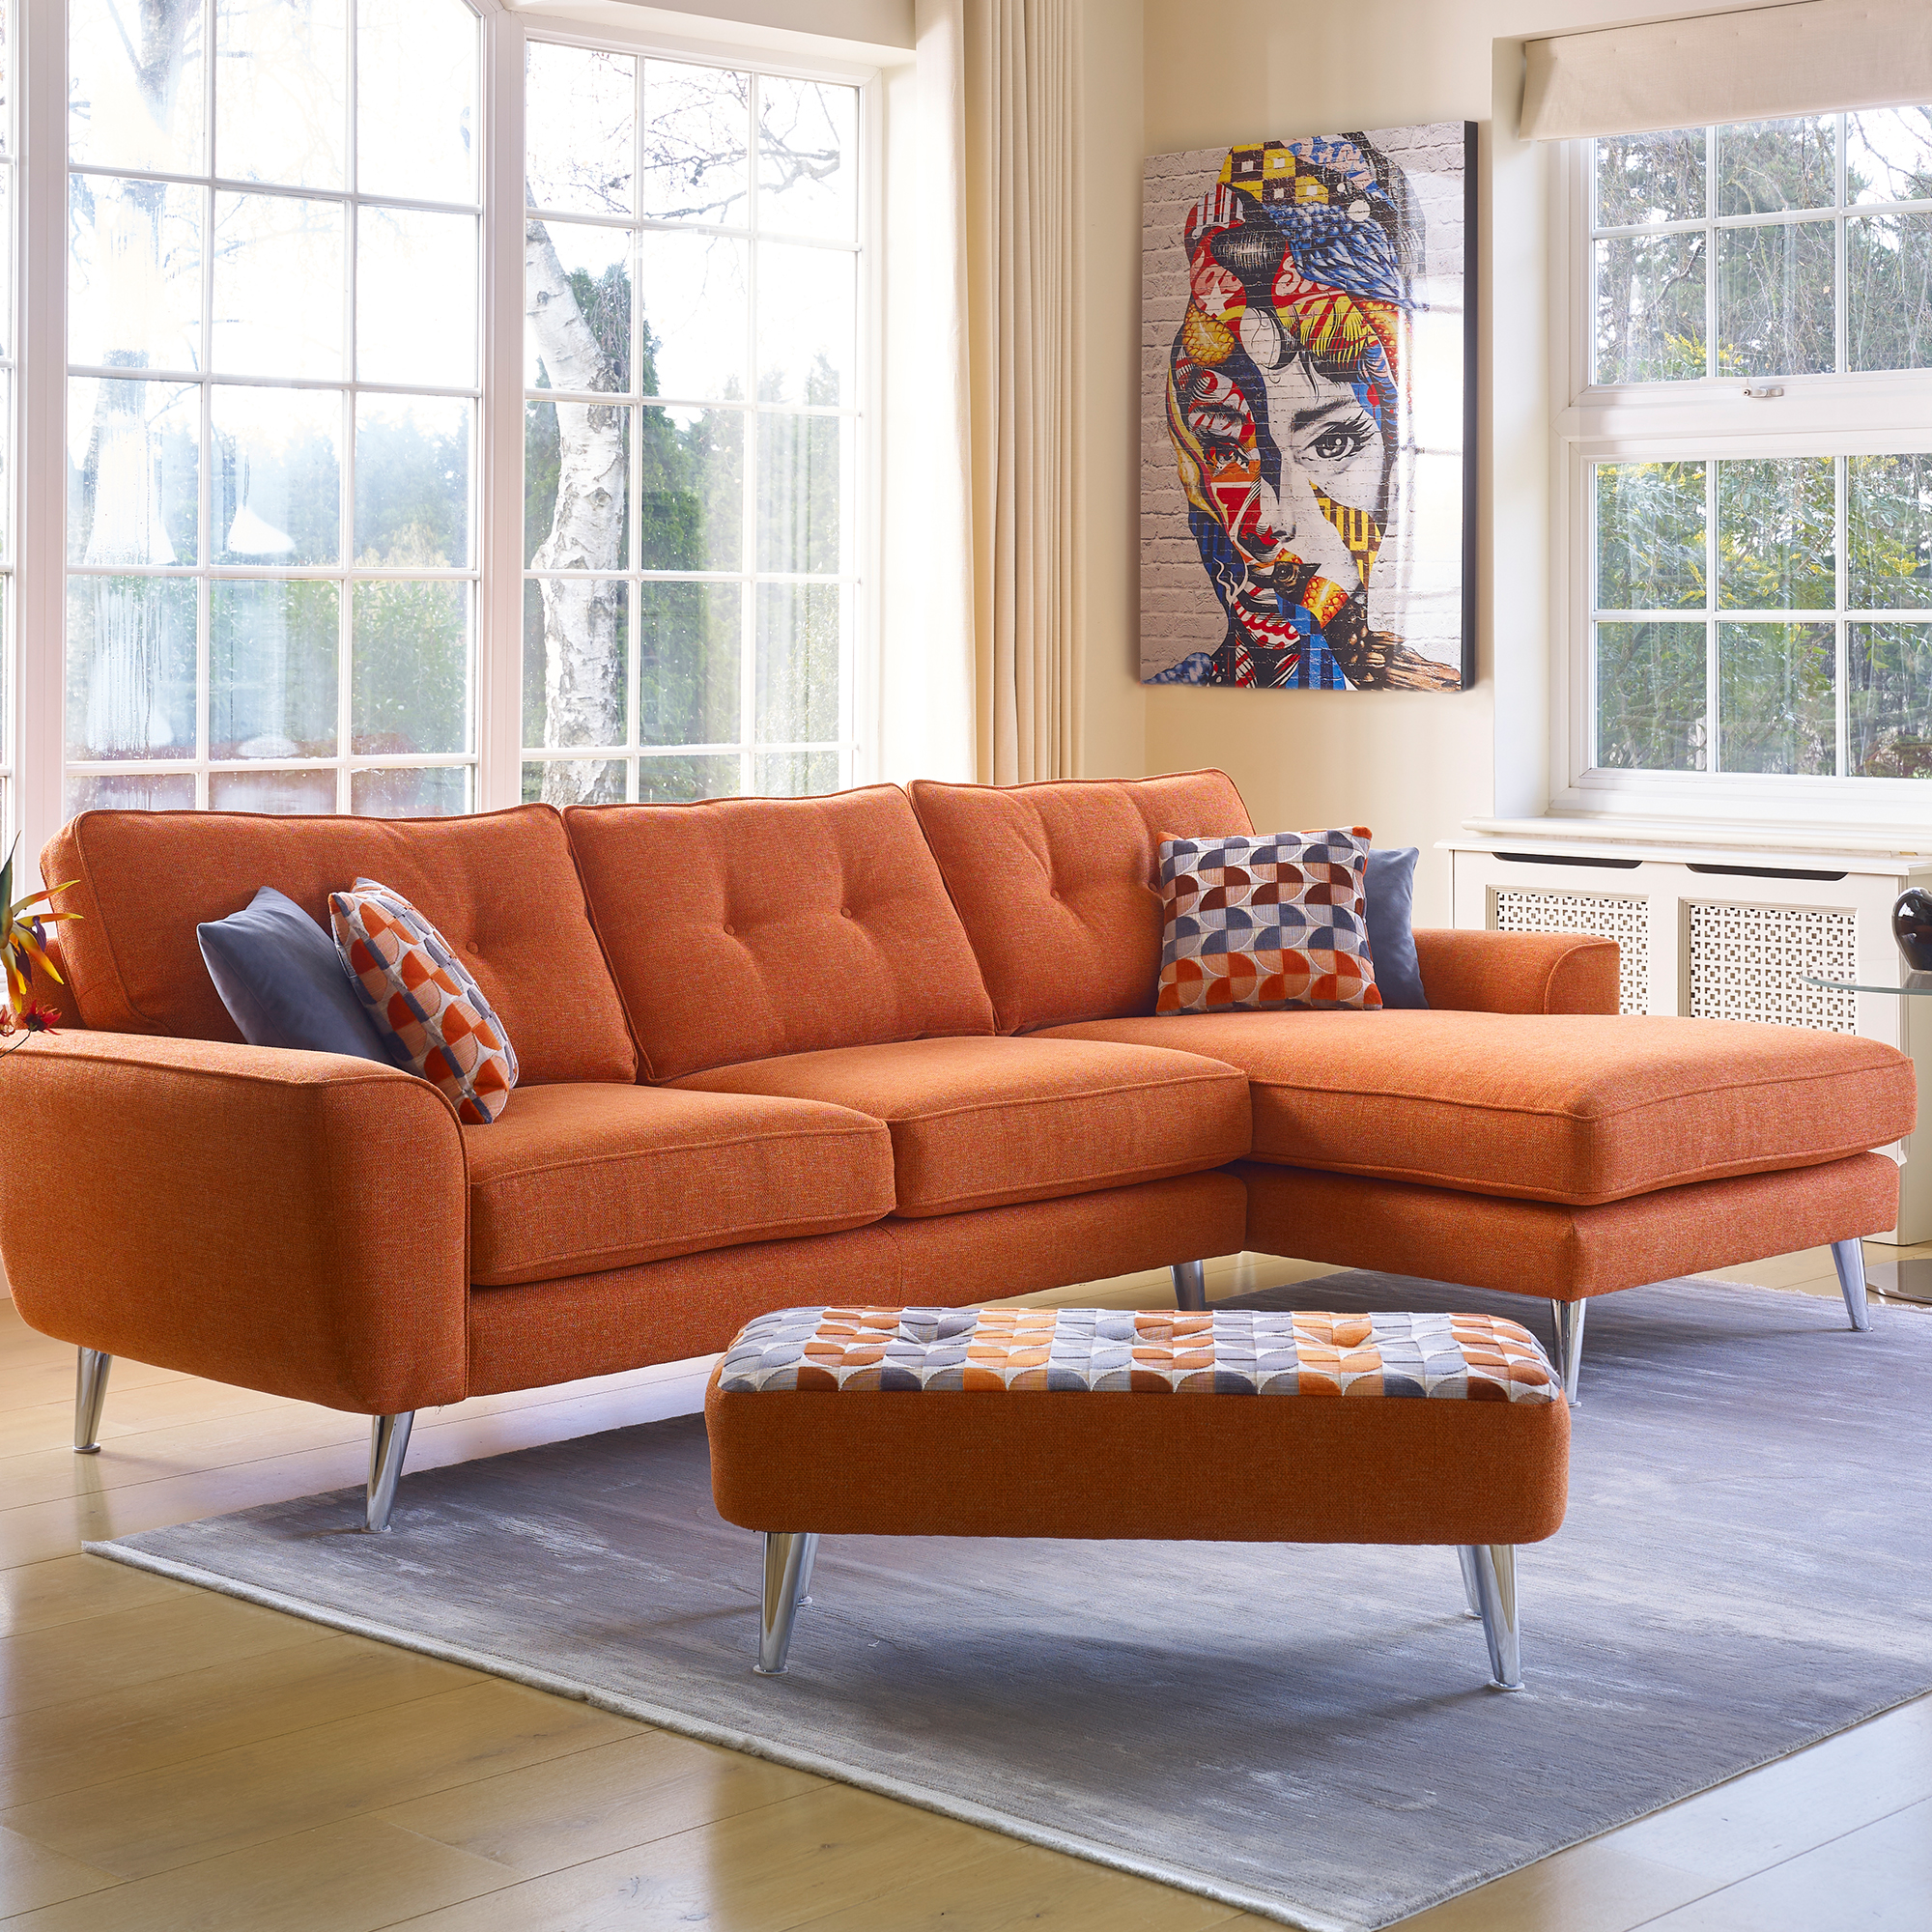 Malaga - Large Chaise Sofa RHF In Fabric